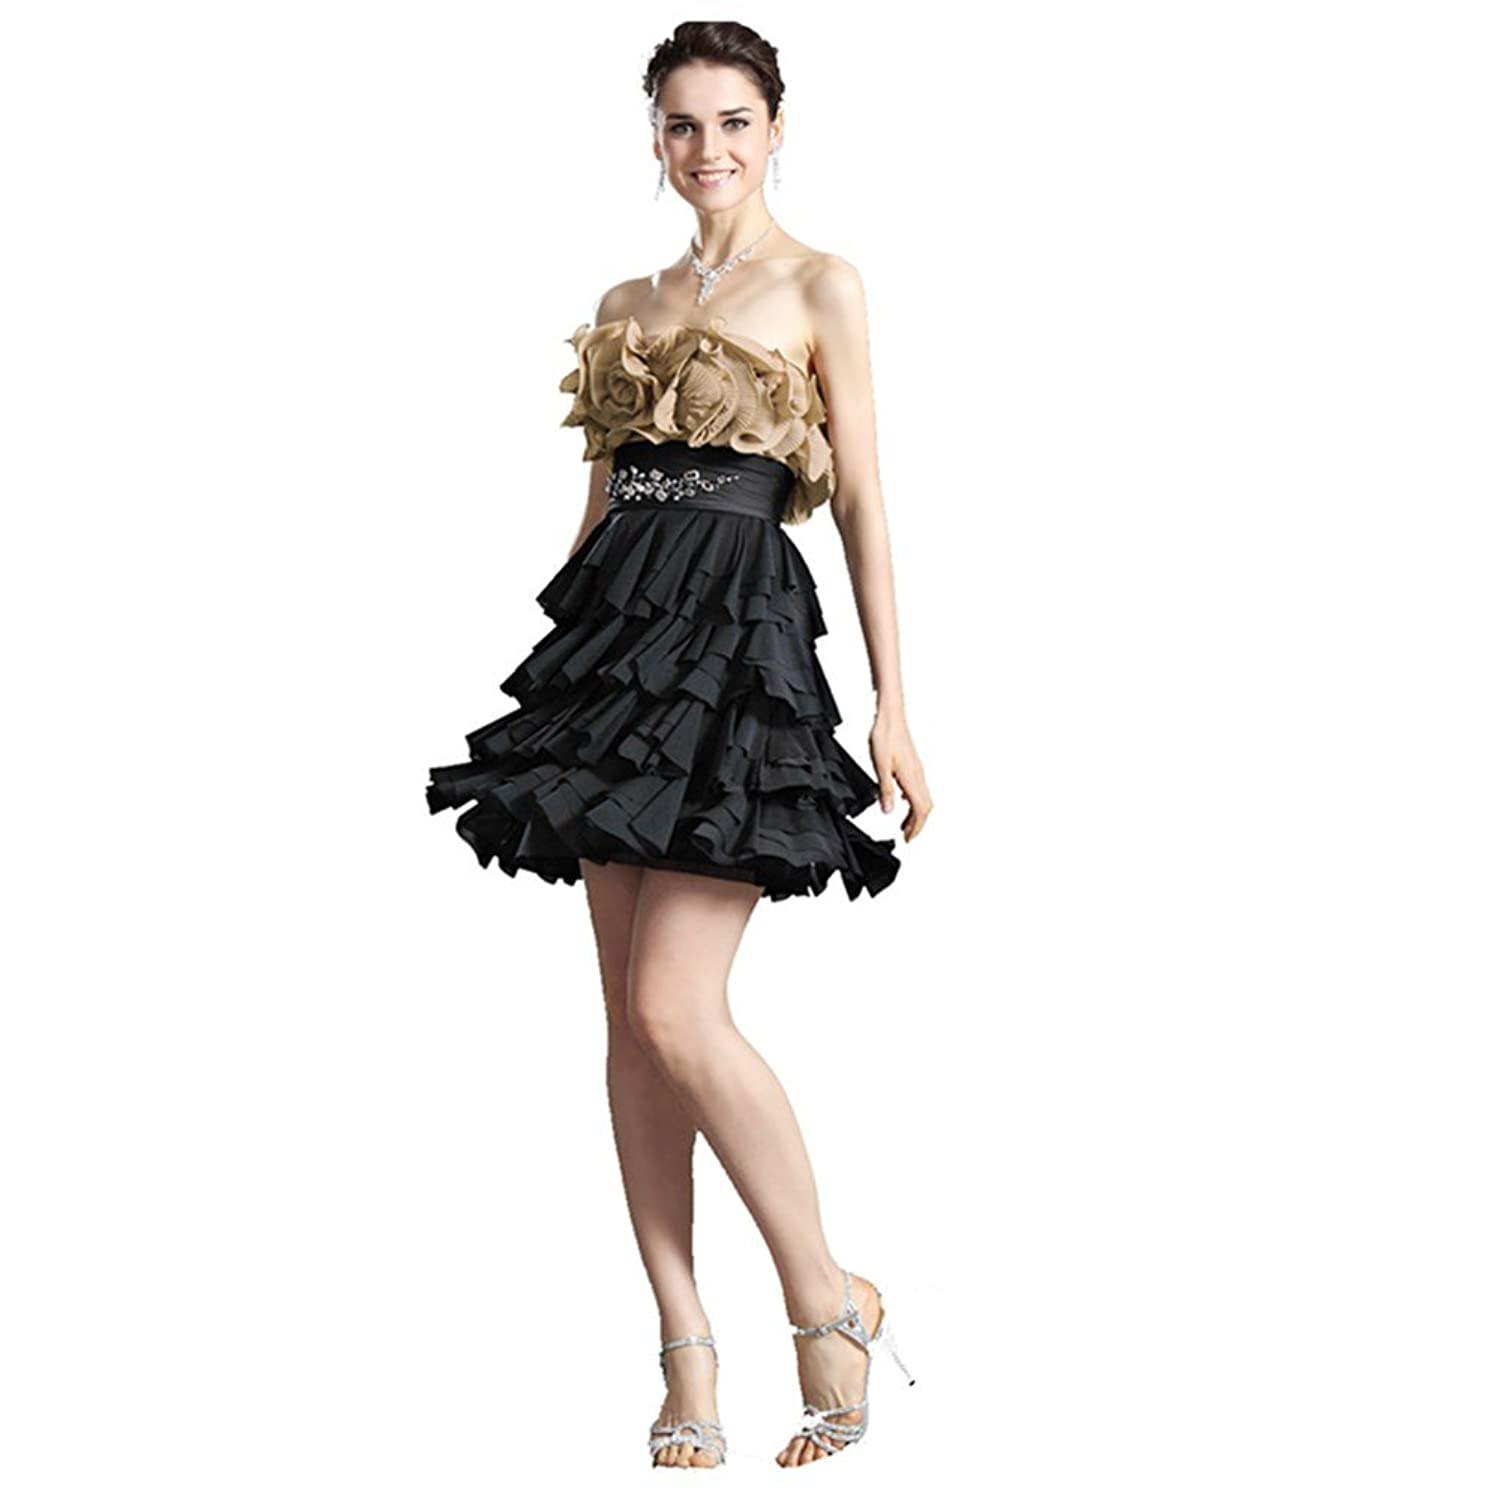 Jspoir Melodiz Women's Floral Detailed Strapless Bodice with Ruffle Tiered Cocktail Dress